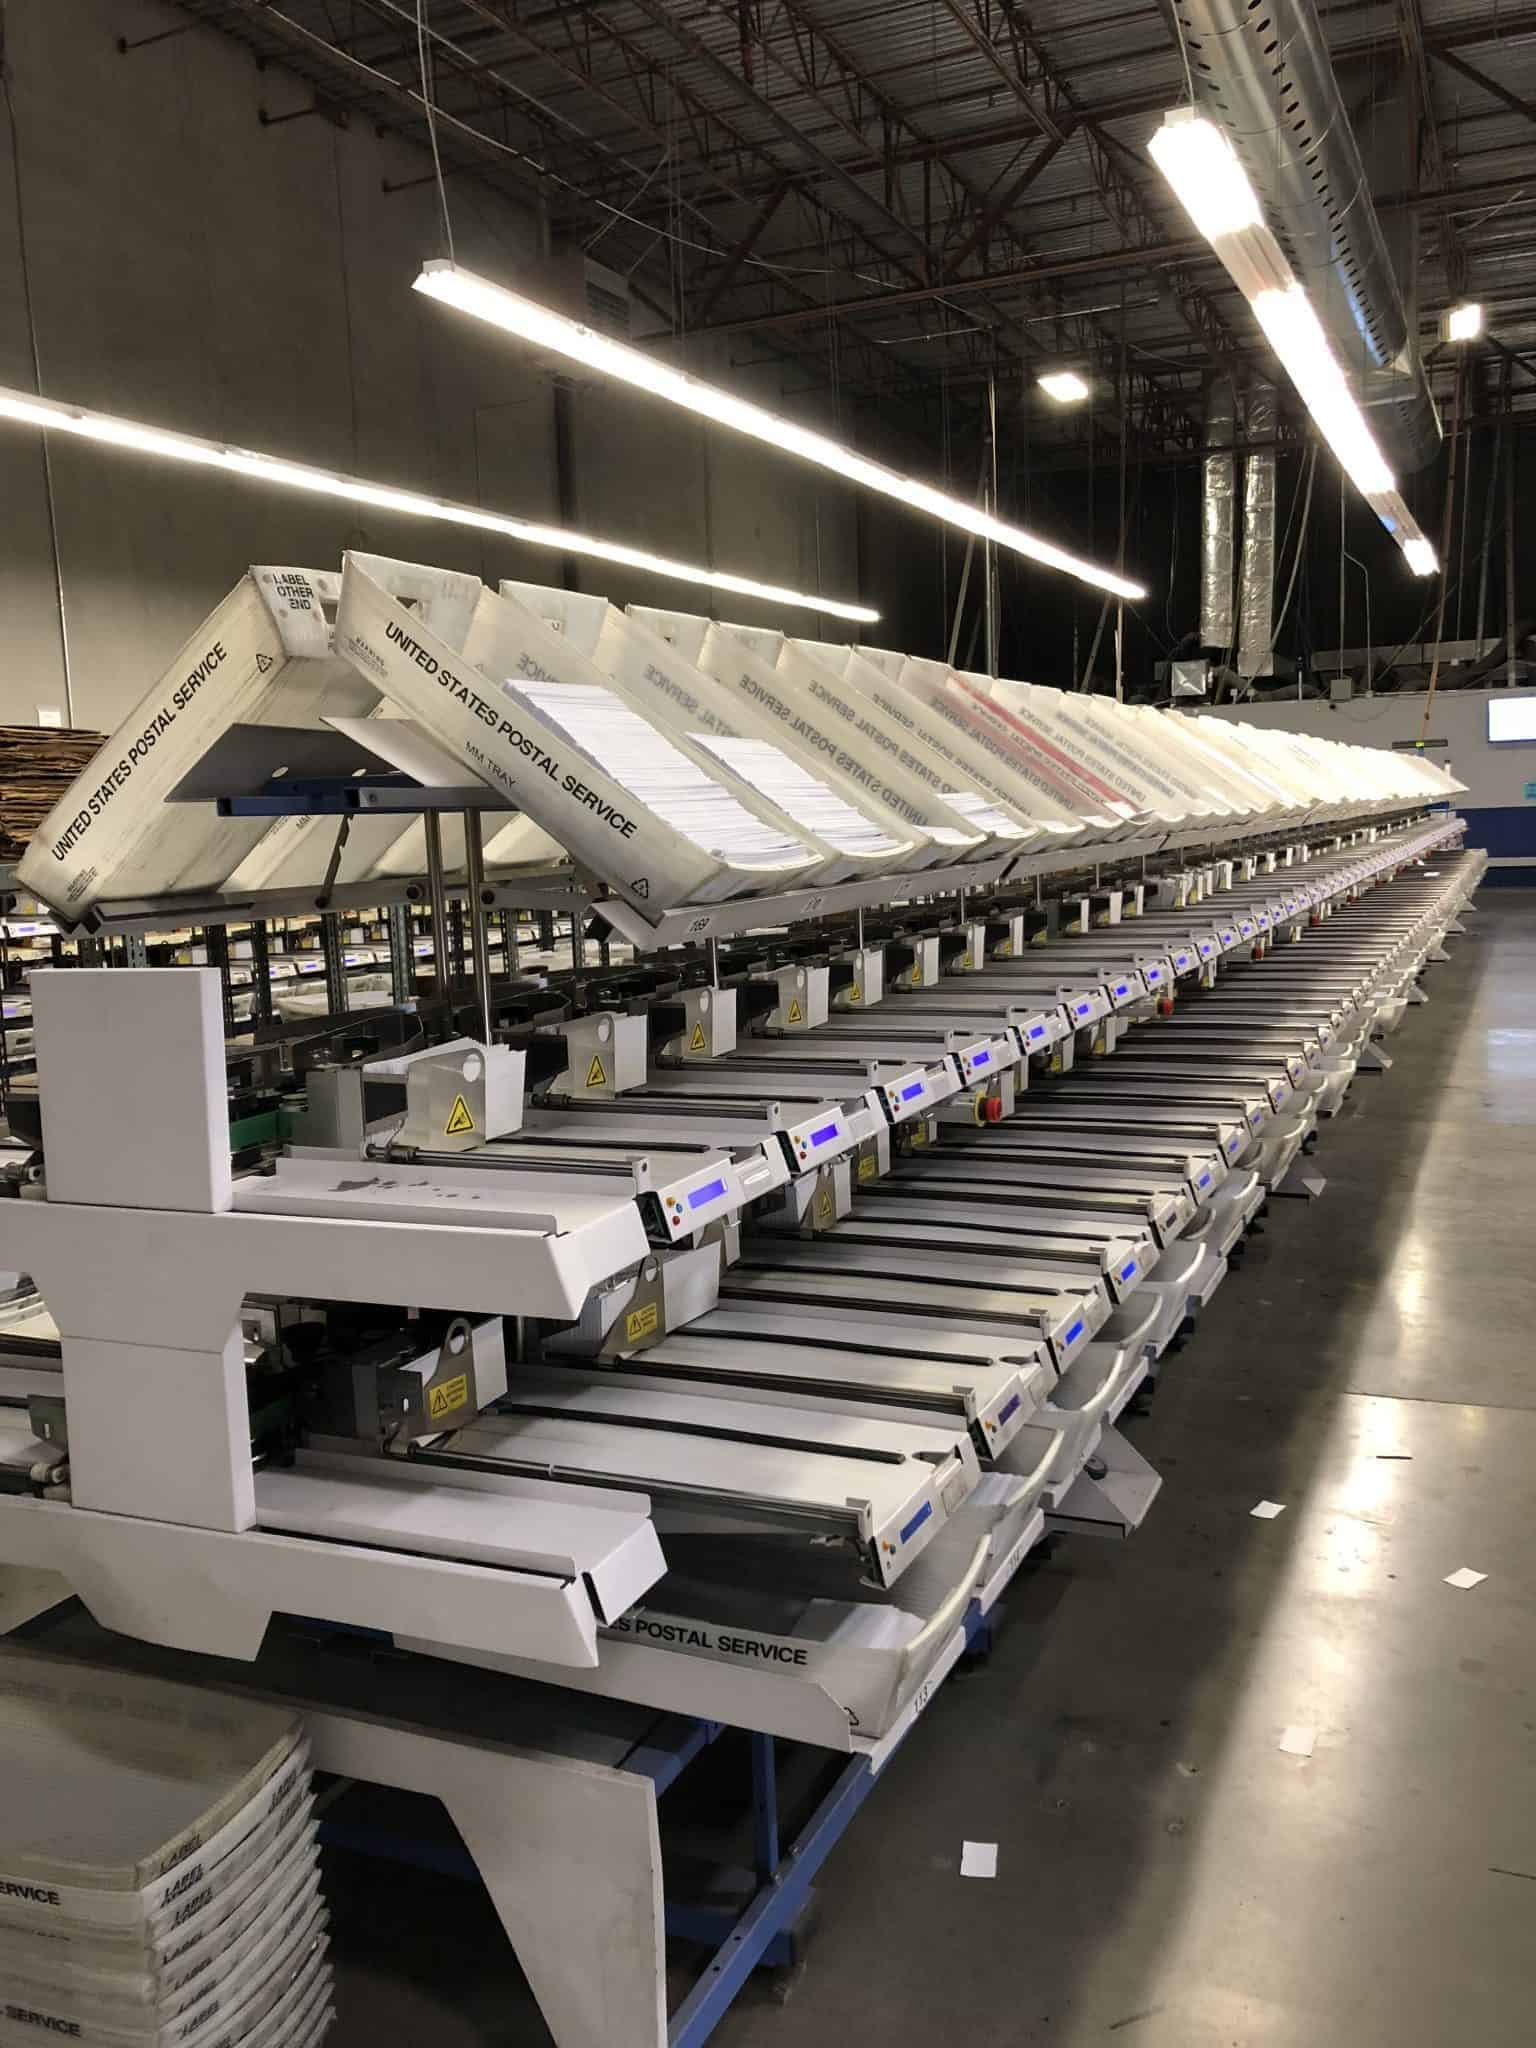 Image of Skymail's sorting machine